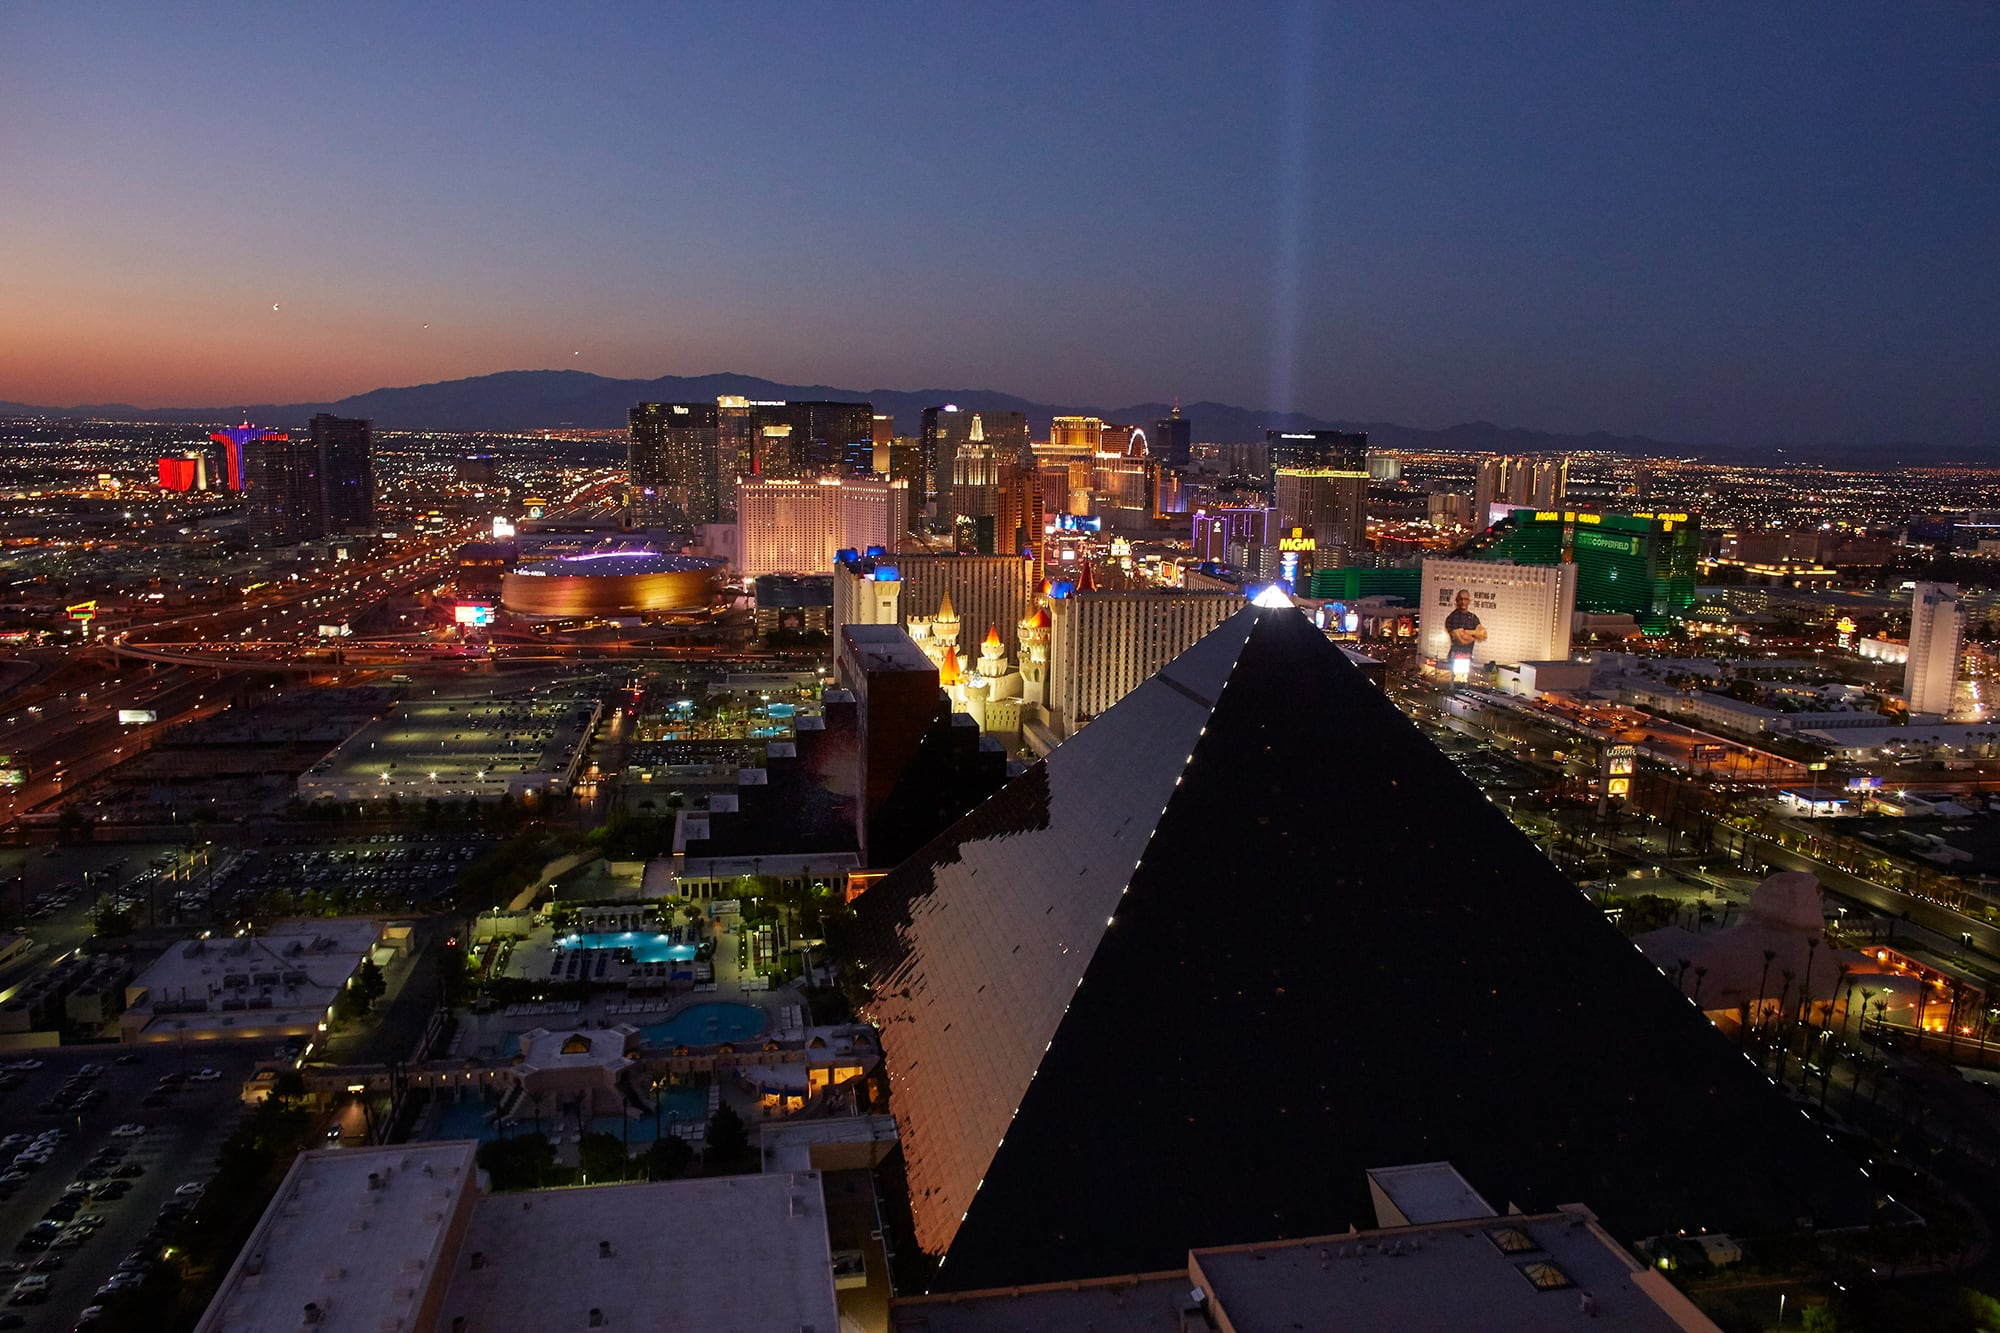 A view from the sky of the Strip at Las Vegas.